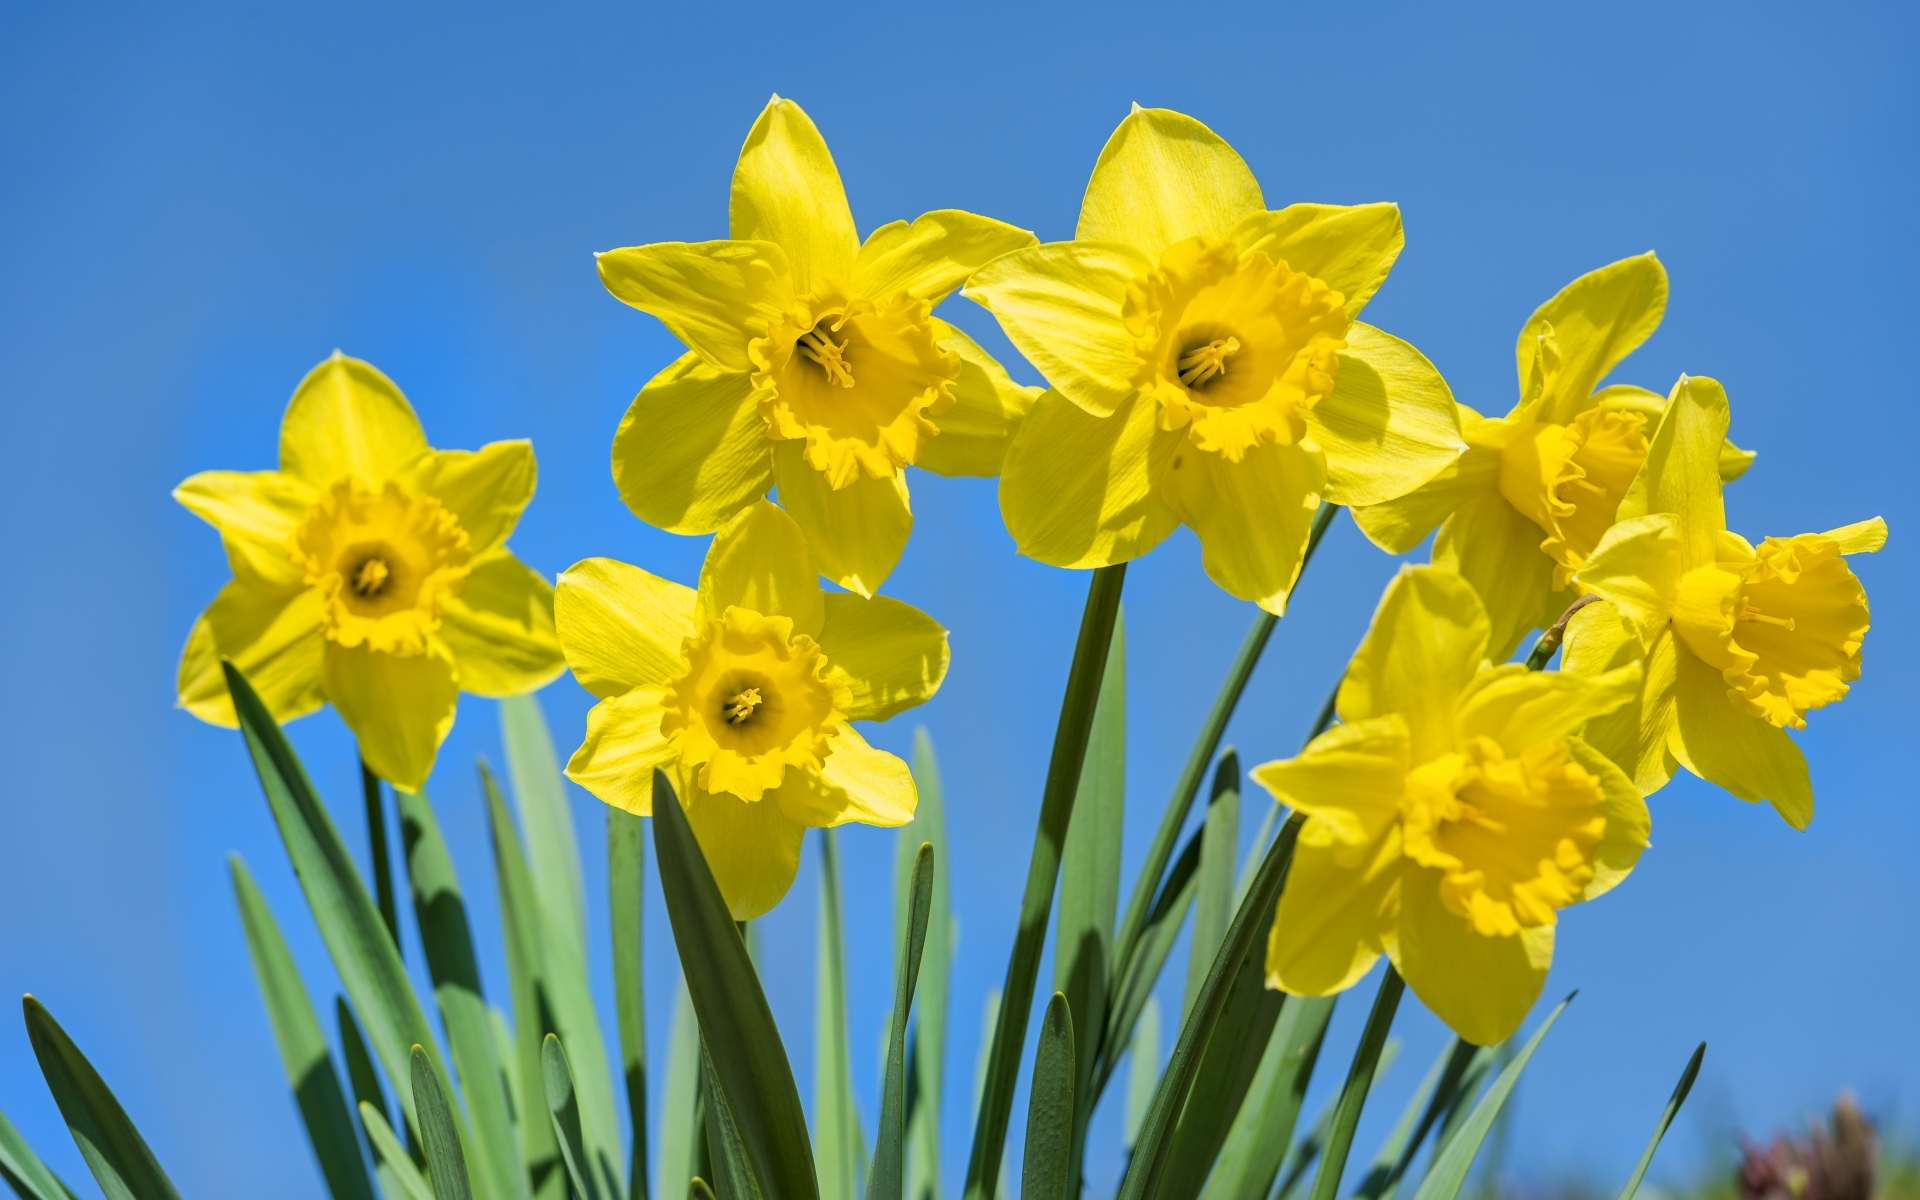 cool daffodil photos and pictures, daffodil high quality wallpapers